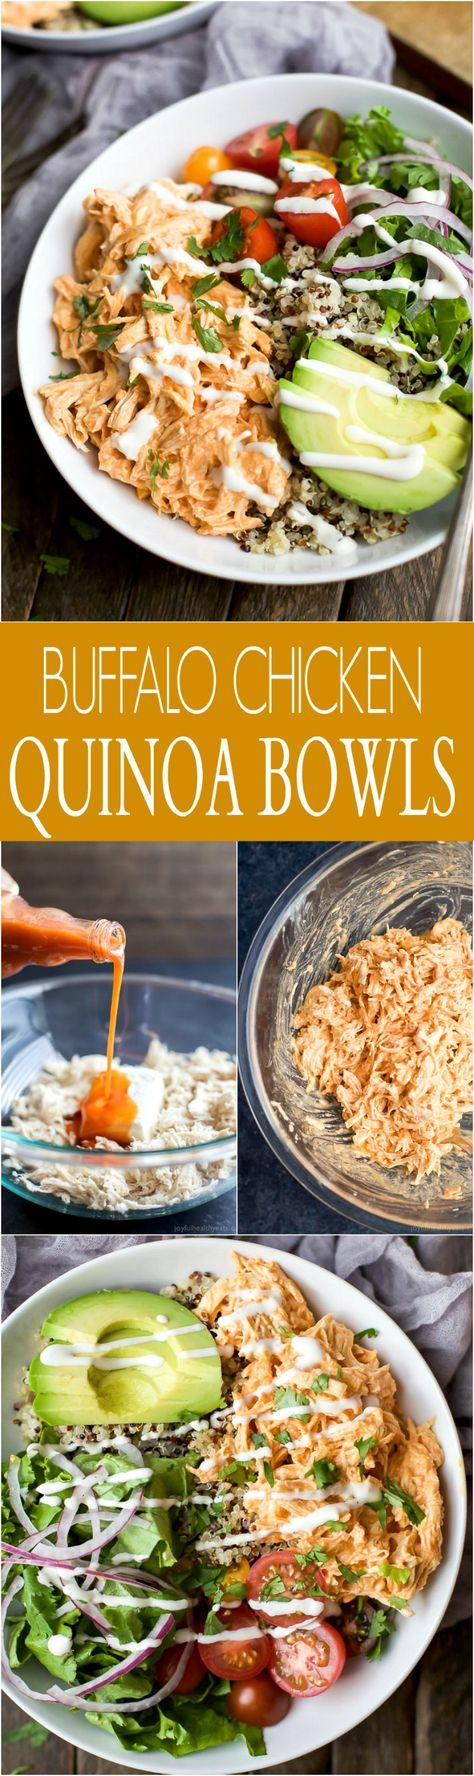 Buffalo Chicken Quinoa Bowls topped with avocado, tomato, shredded buffalo chicken, drizzled with ranch and served on a bed of quinoa. Football food just got a healthy facelift! | http://joyfulhealthyeats.com #glutenfree